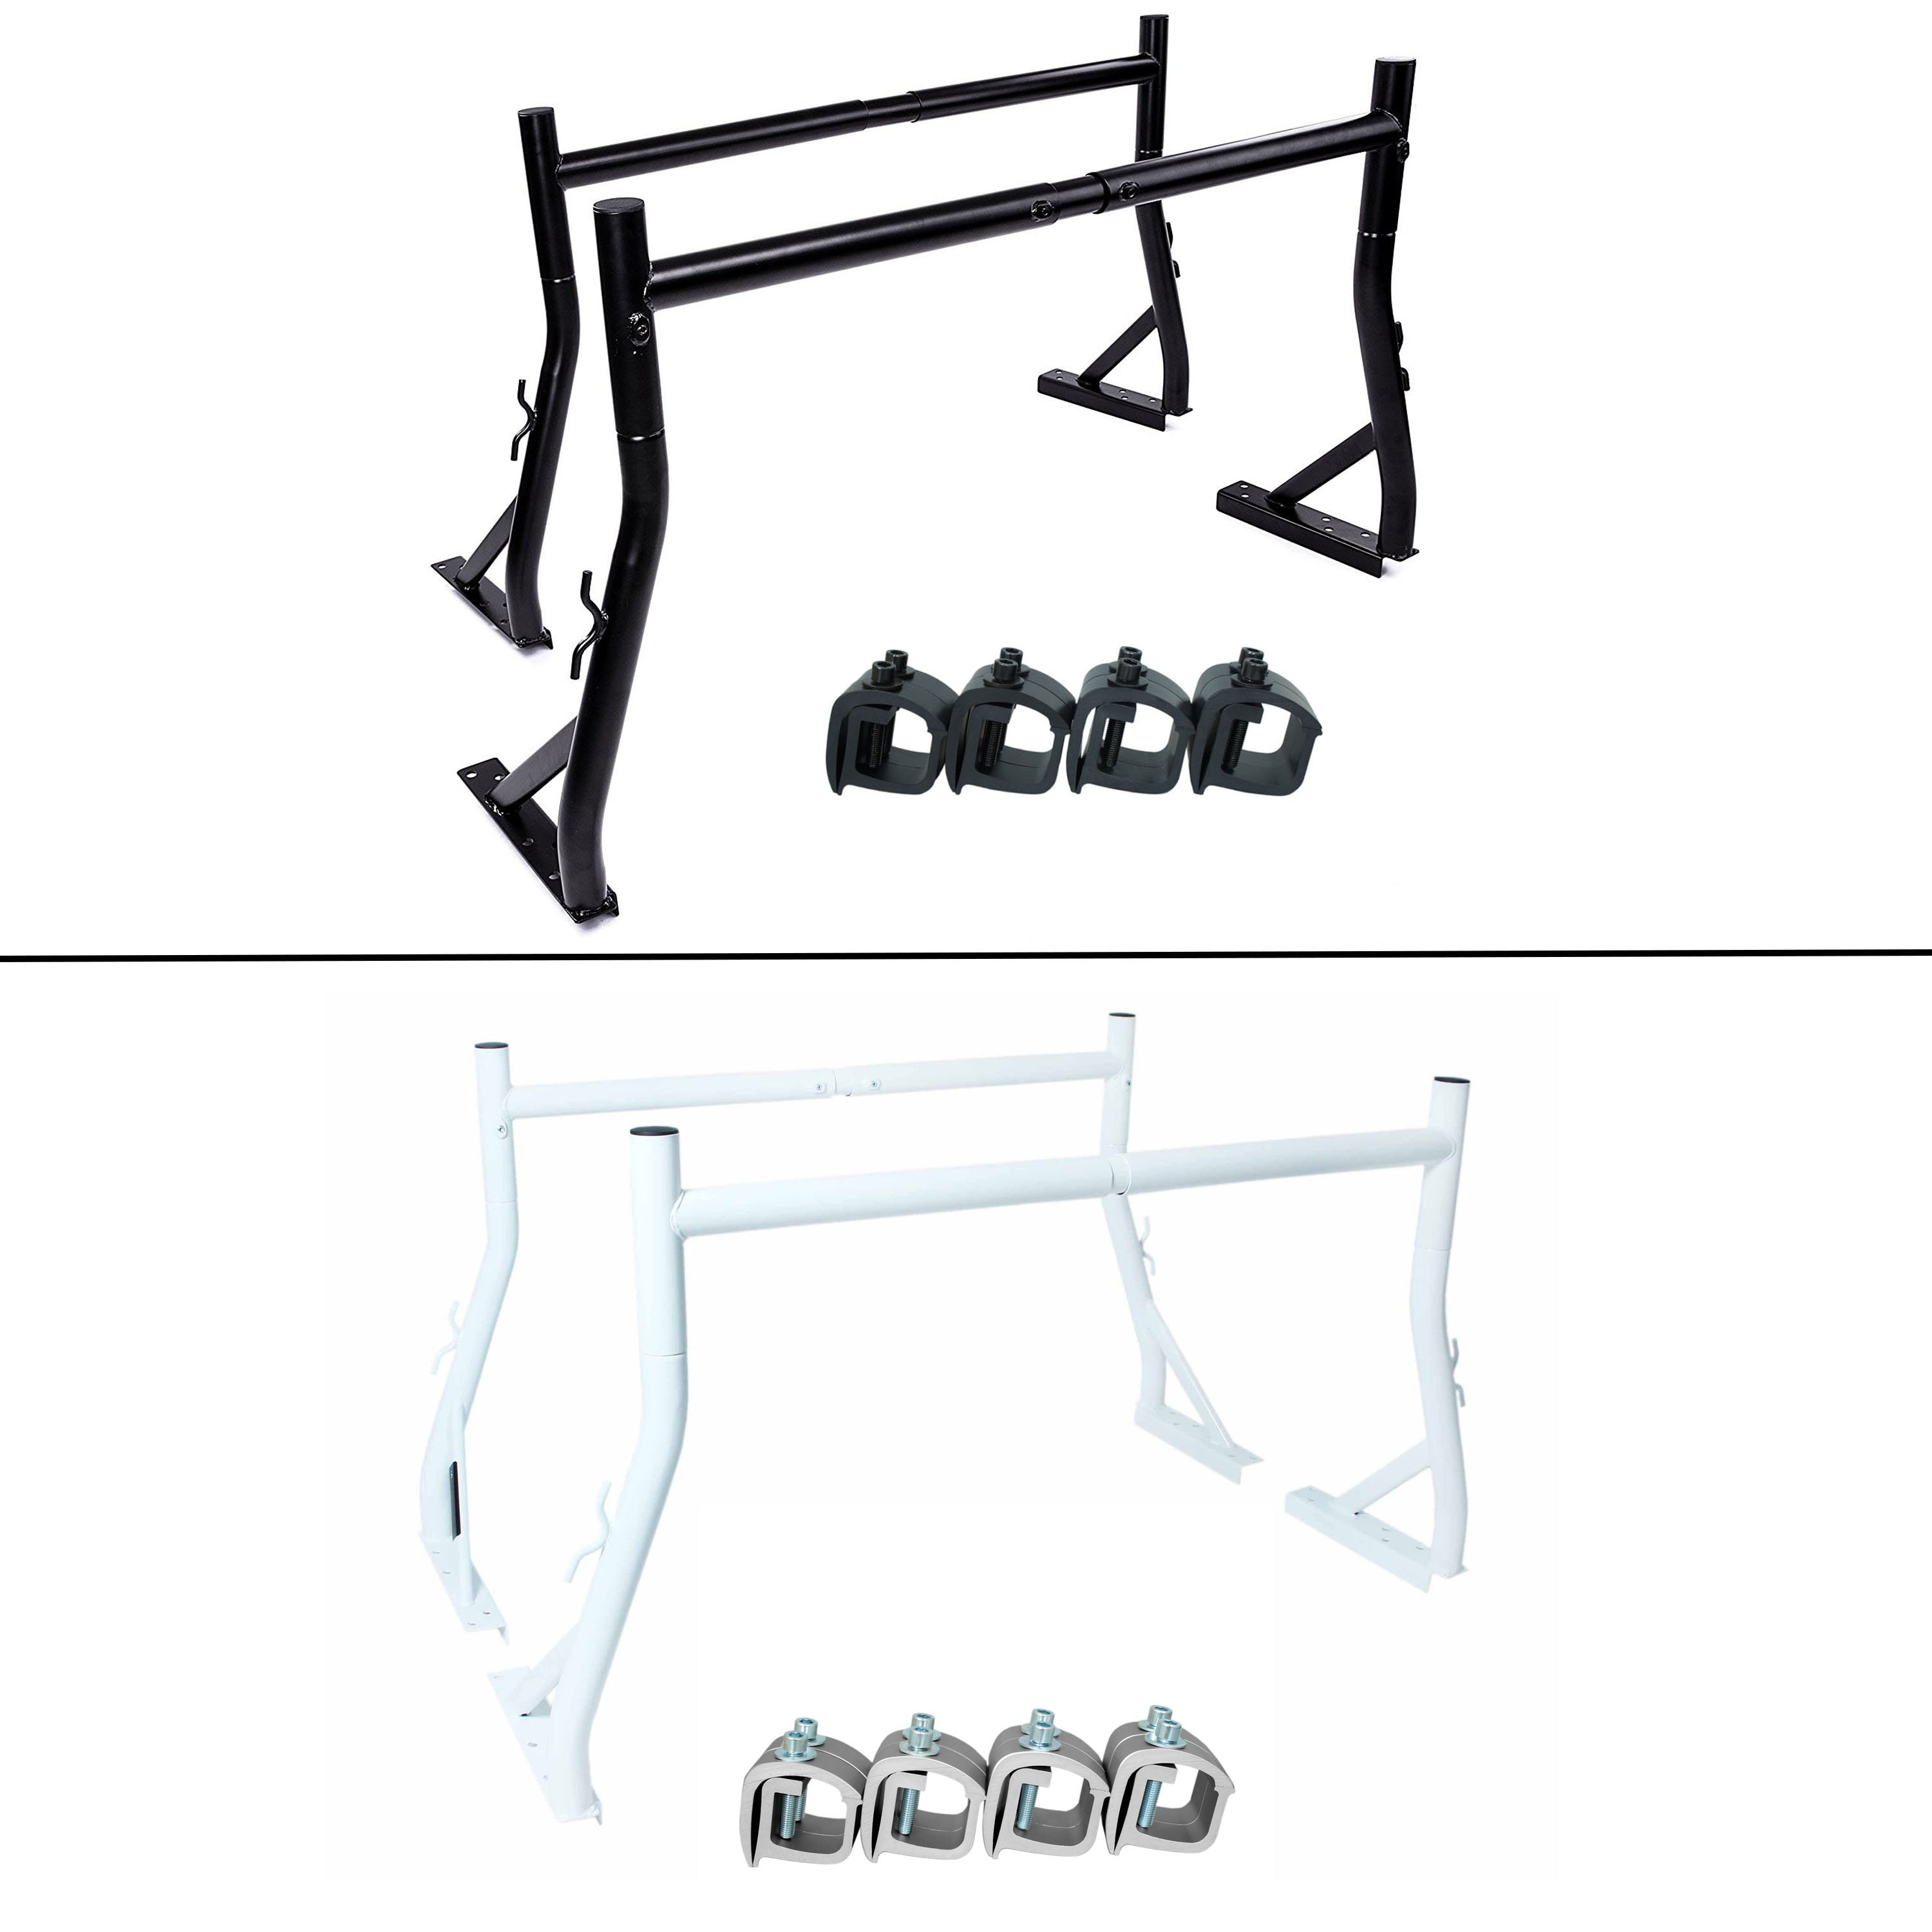 Aa Racks X35 Truck Rack With 8 Non Drilling C Clamps